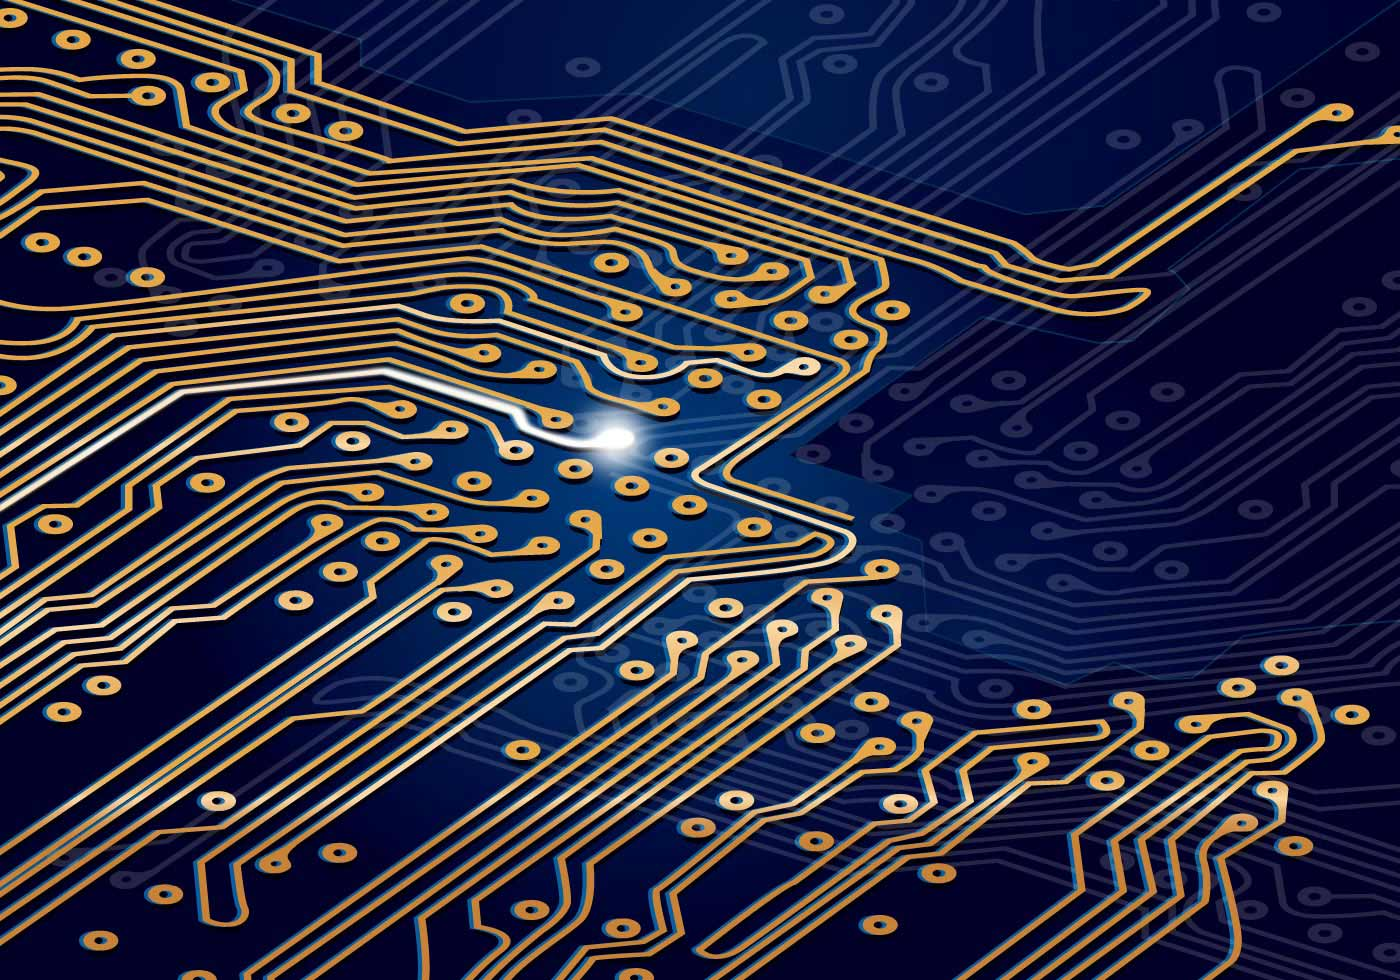 Pcb Vector At Free For Personal Use Of Electronic Circuit Design Software Download 1400x980 Board Art